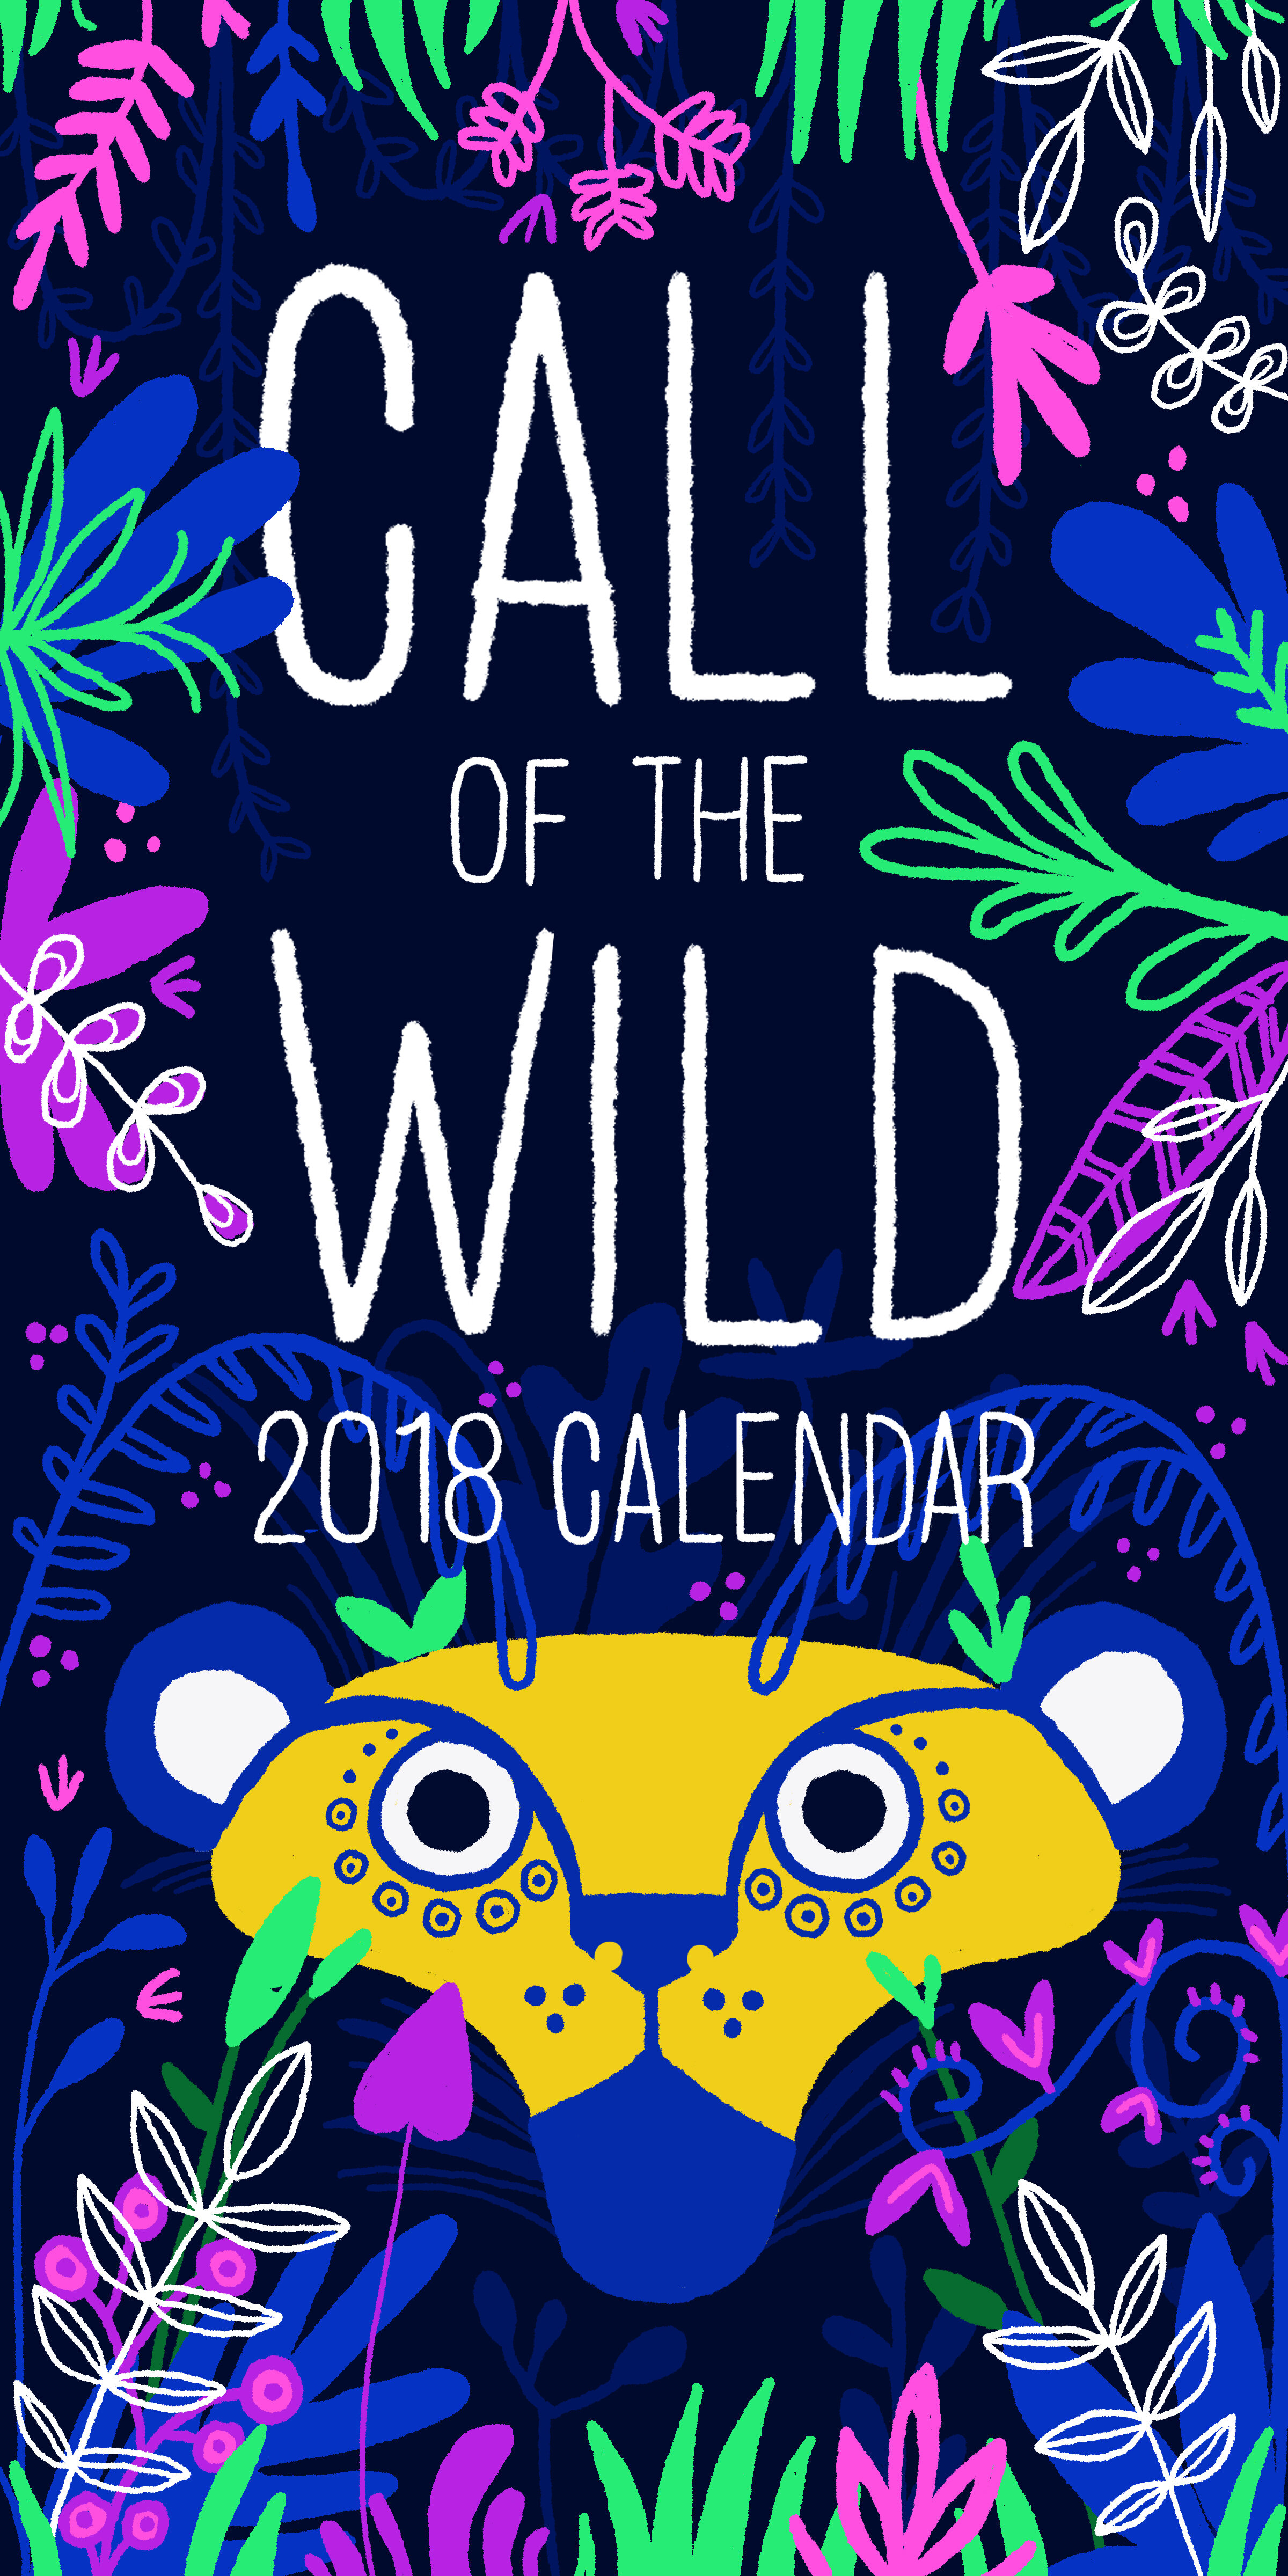 Call of the Wild Calendar: Title Page